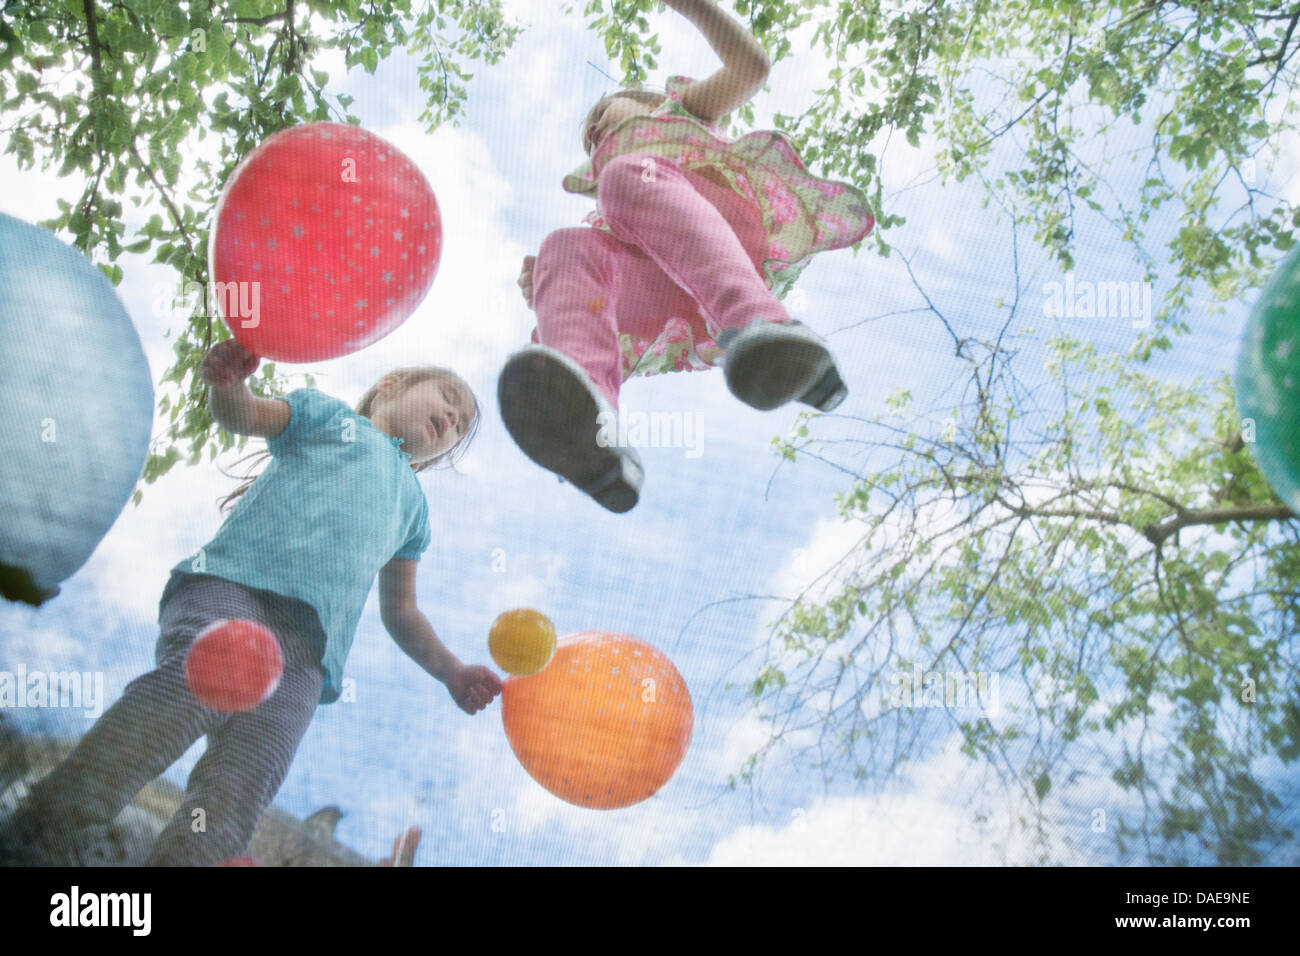 Young girls jumping on garden trampoline with balloons - Stock Image